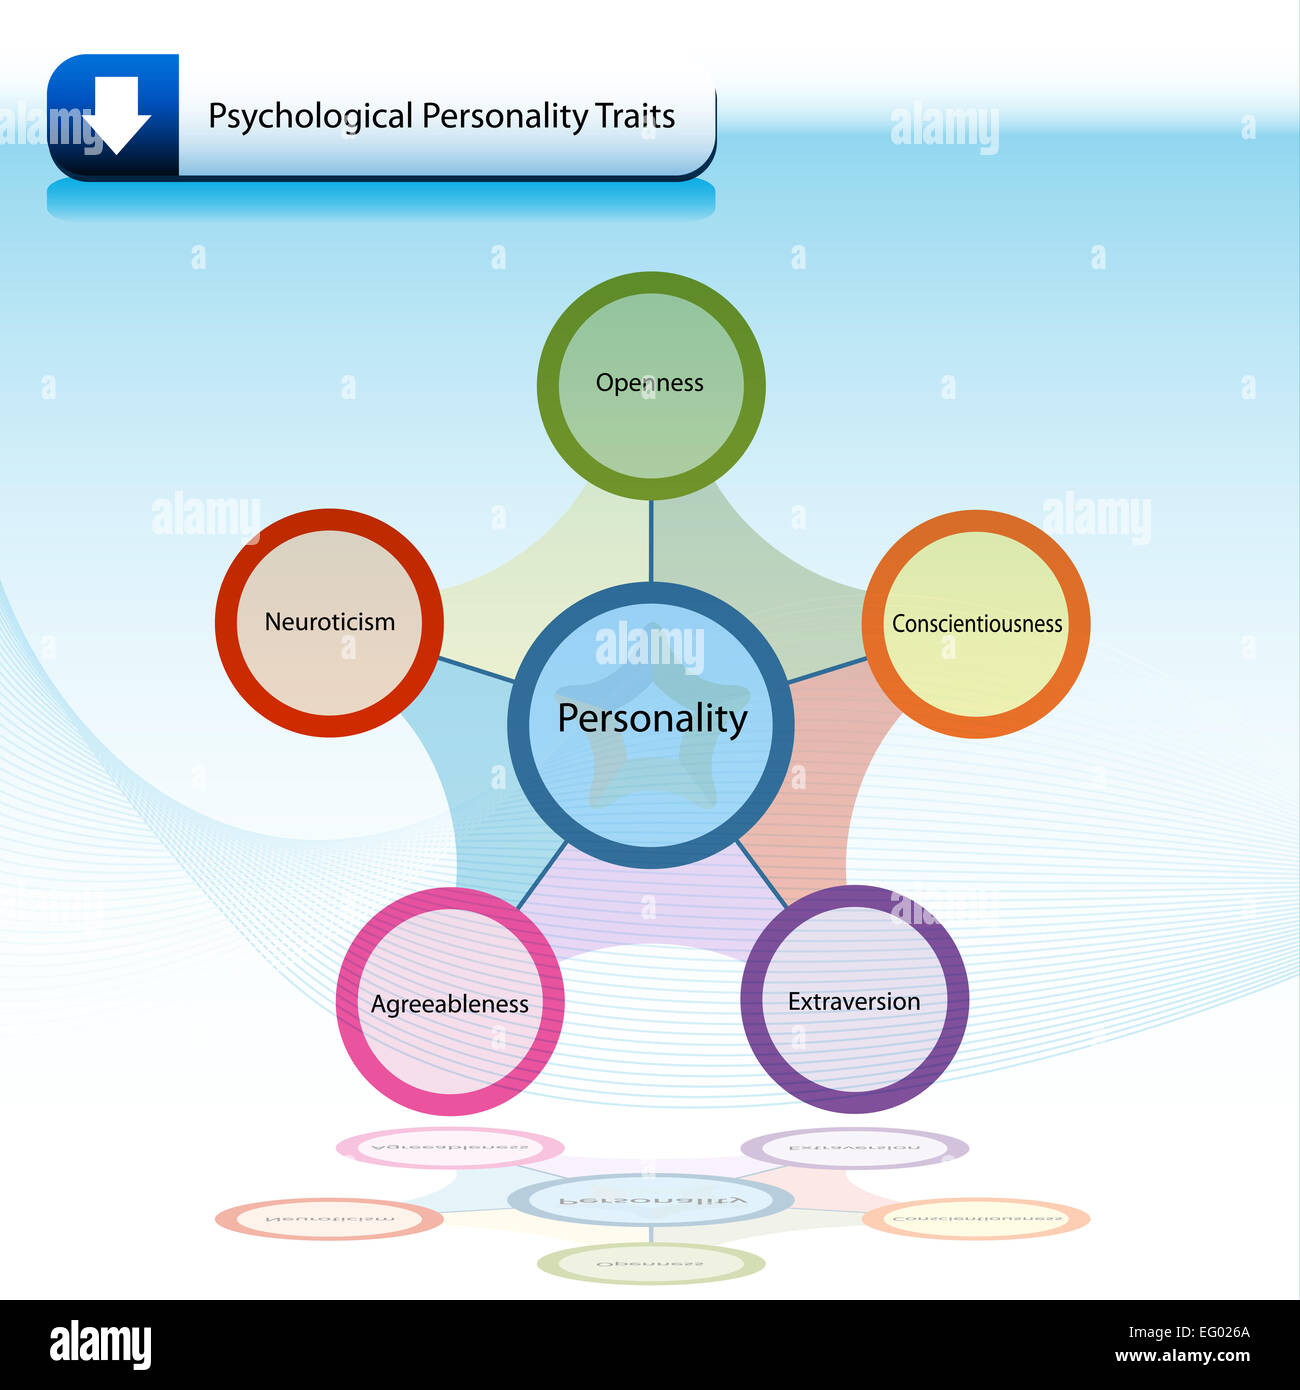 an image of a psychological personality traits chart. Black Bedroom Furniture Sets. Home Design Ideas